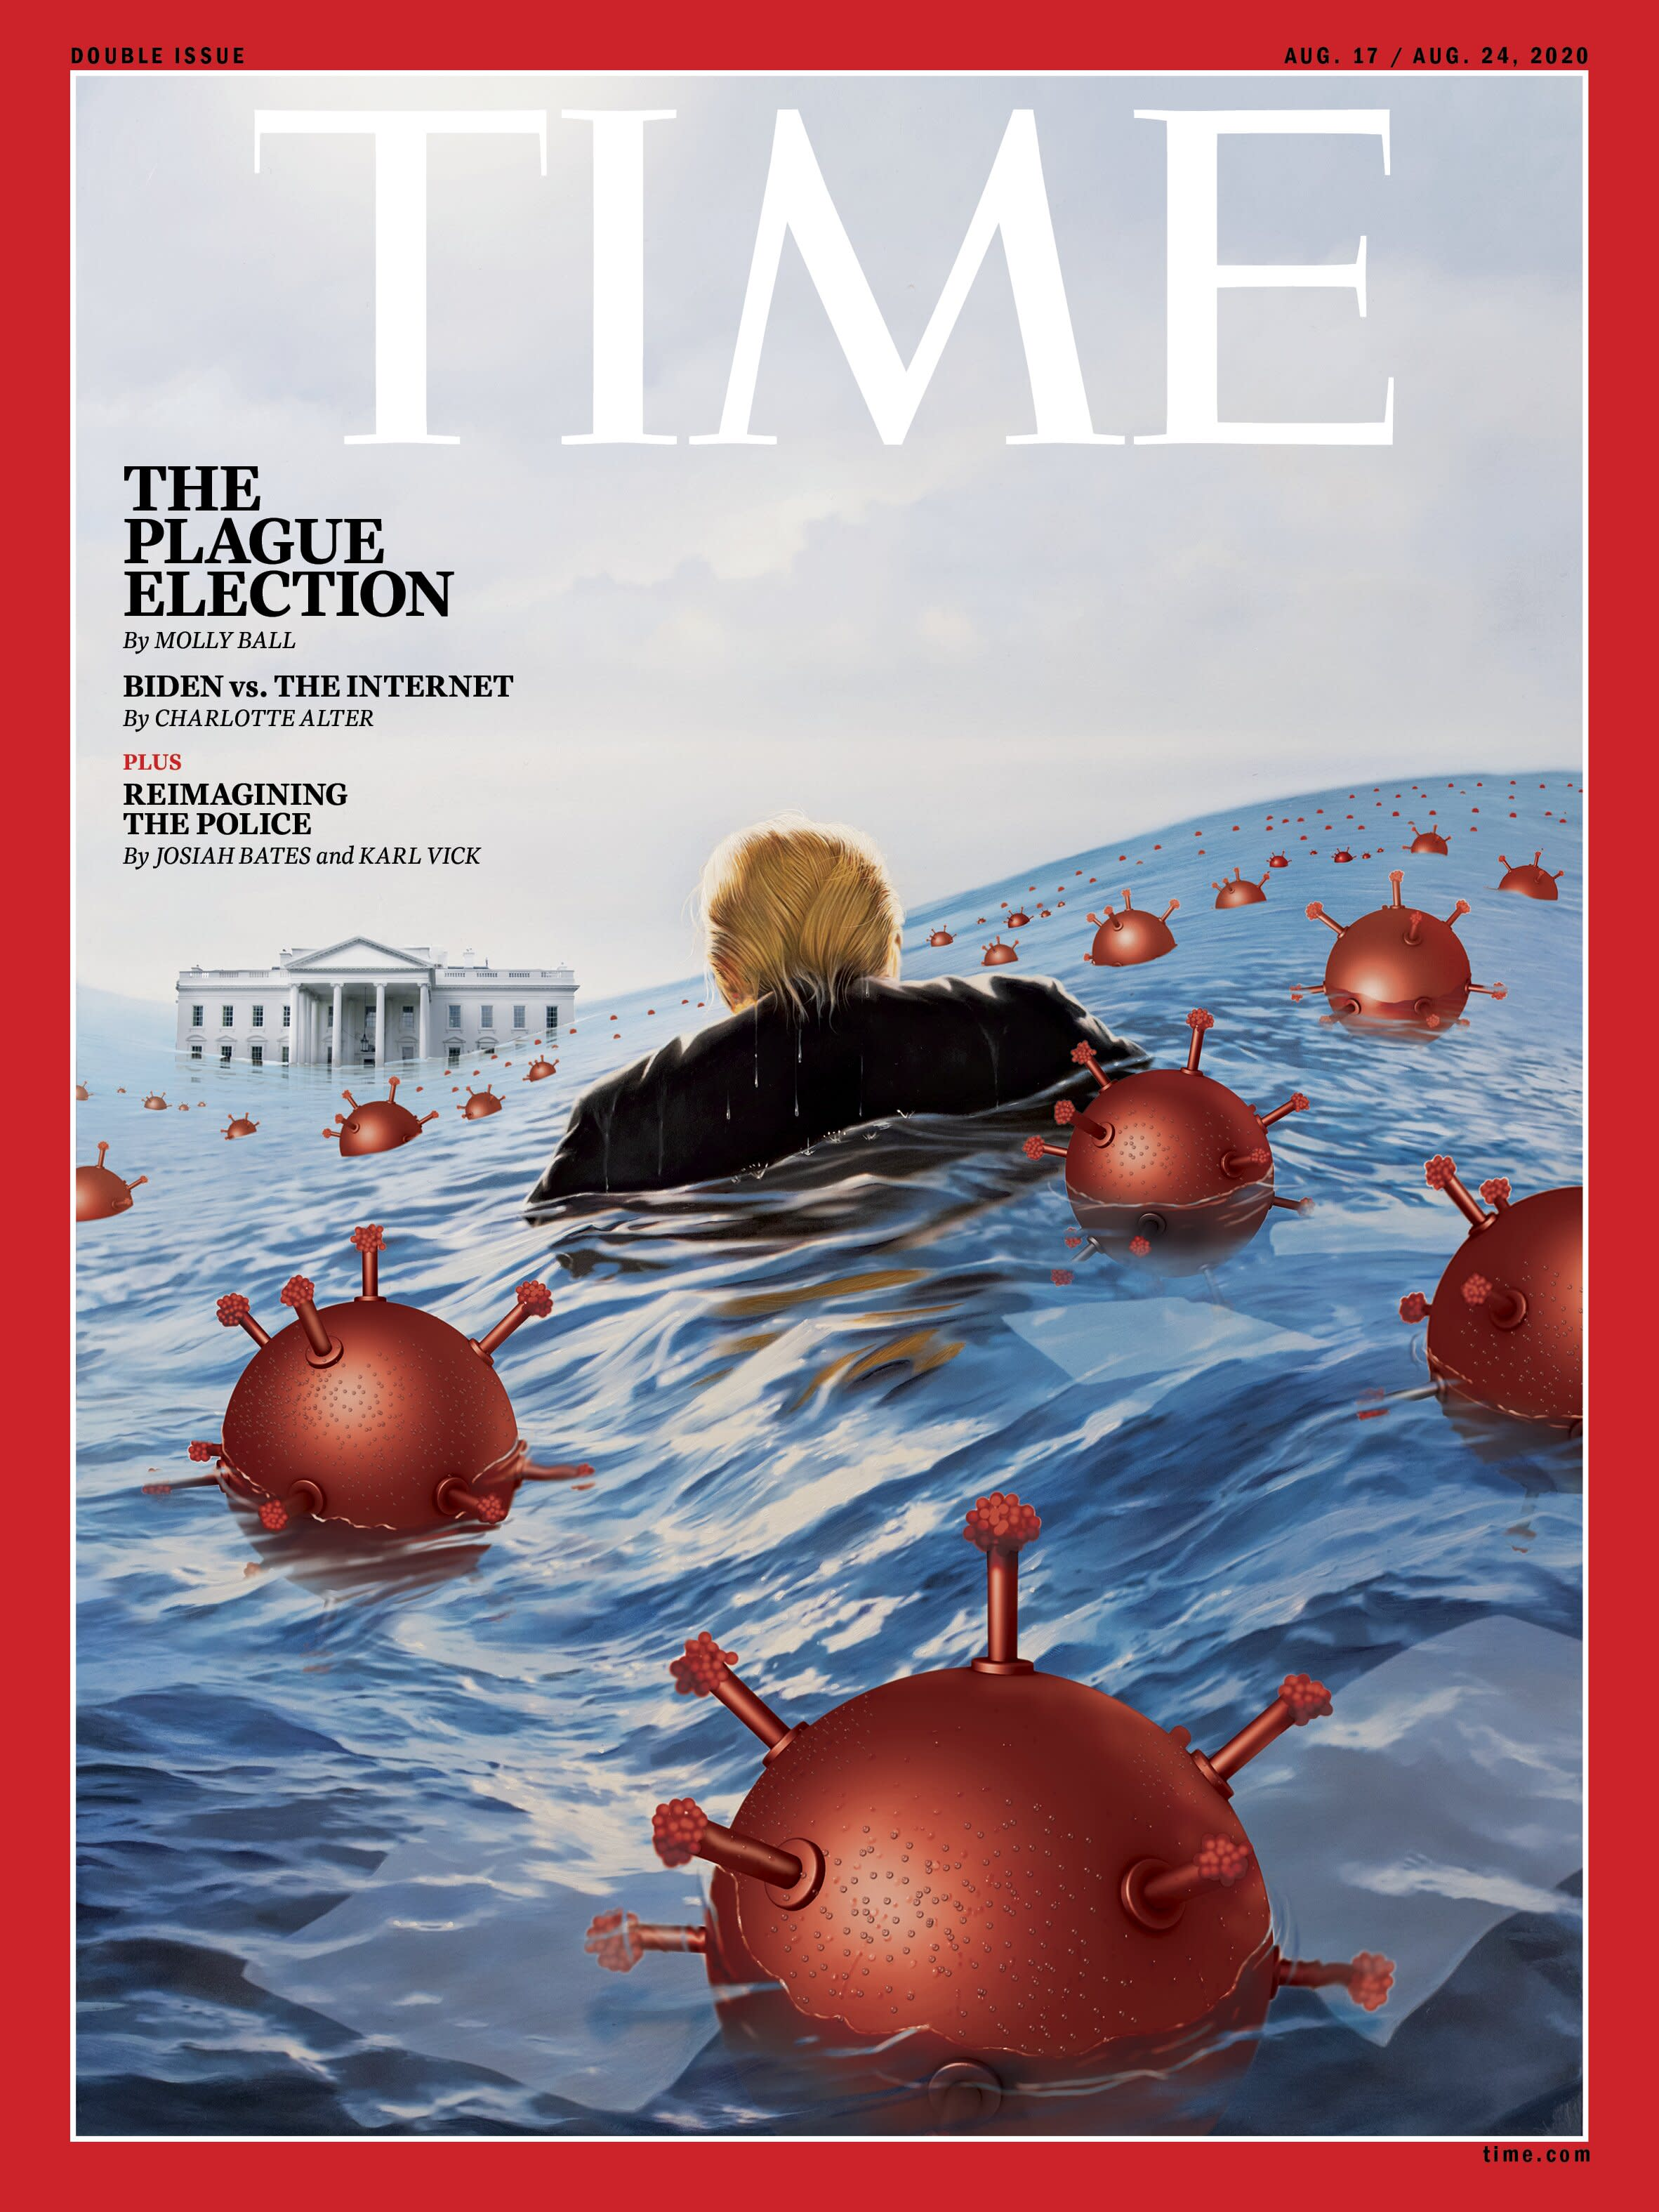 The Story Behind TIME's 'Plague Election' Donald Trump Cover